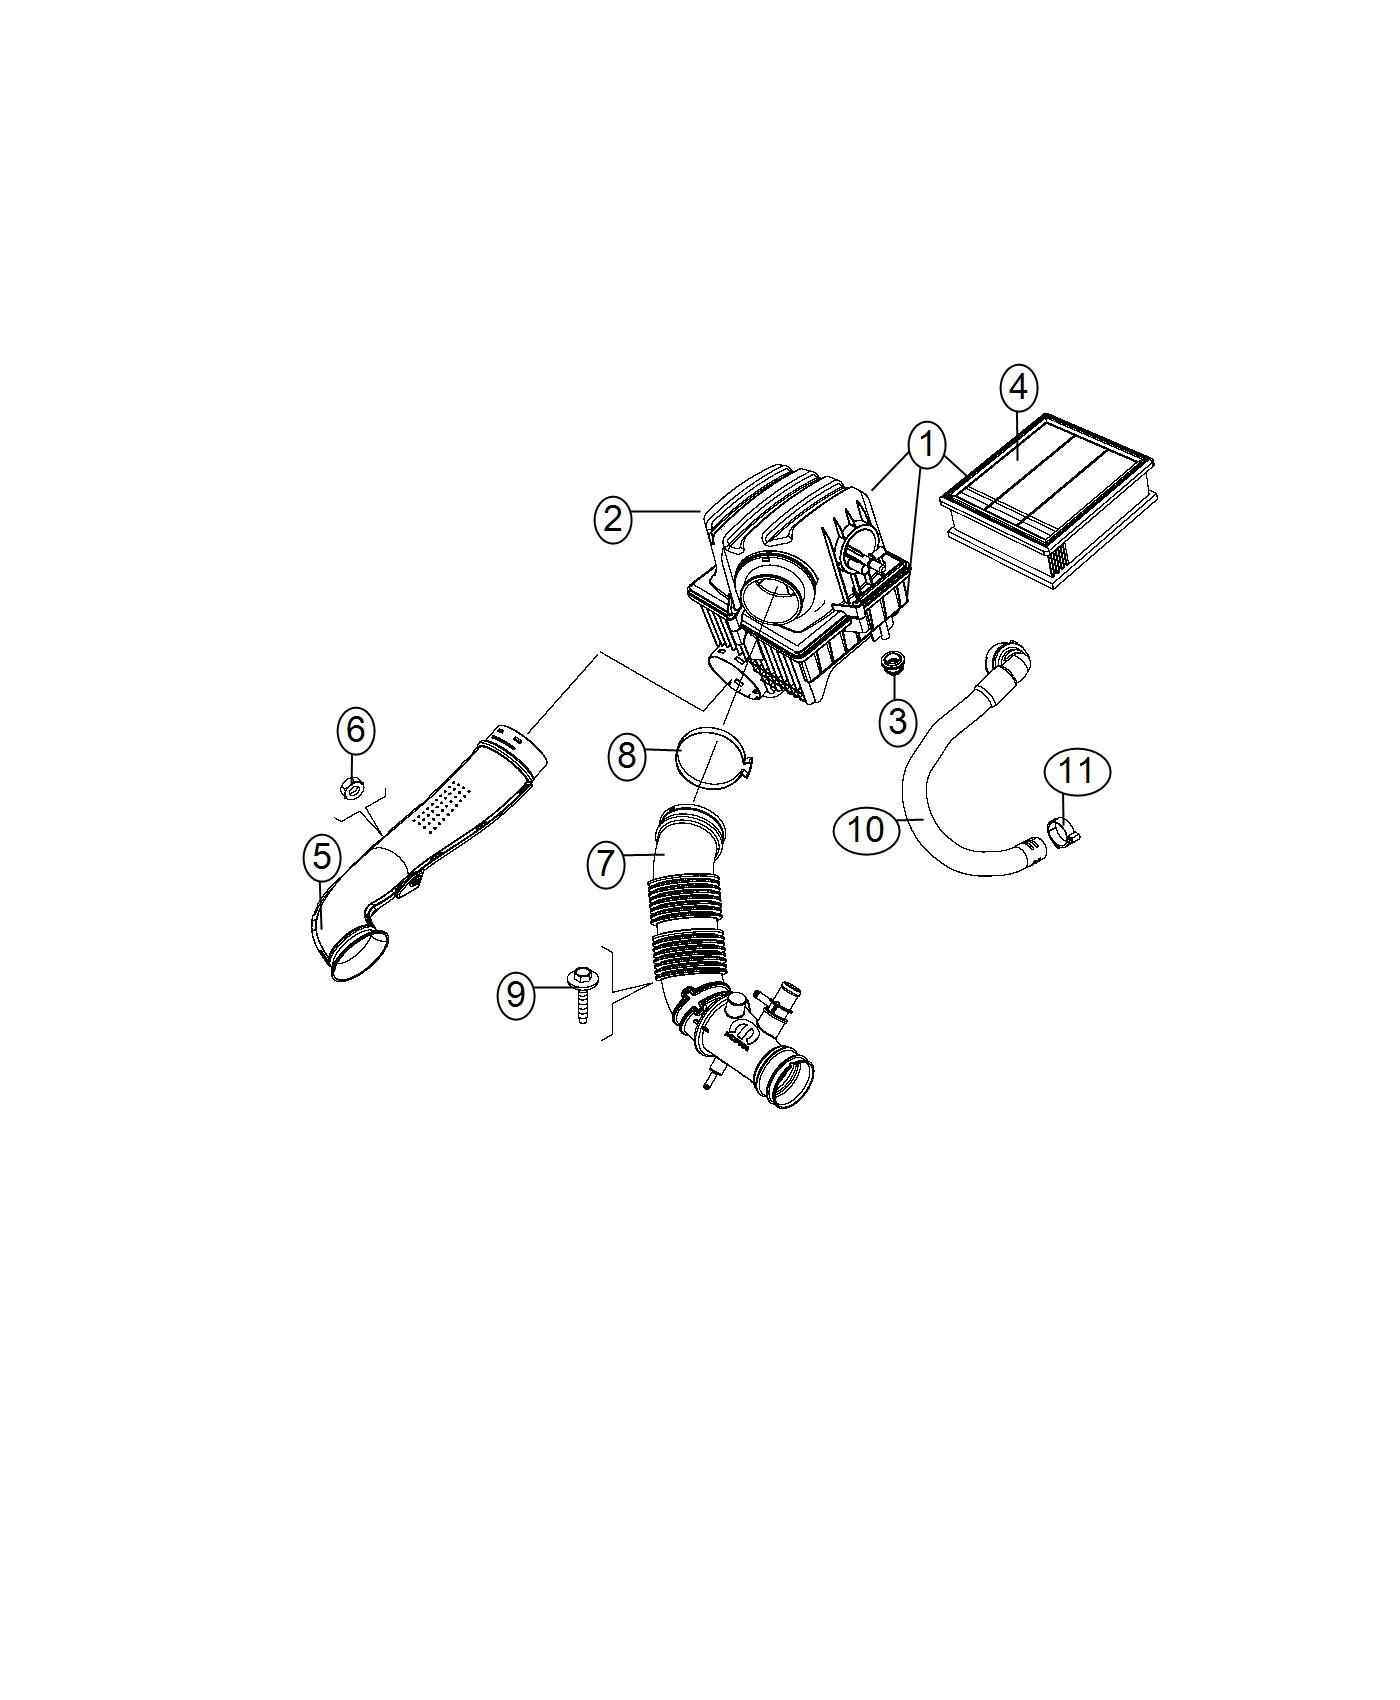 volvo d13 sensor diagram wiring diagram database tags volvo d13 fuel system volvo truck engine diagram volvo truck wiring schematic 2002 volvo truck wiring diagrams volvo truck wire diagram hazard j1939